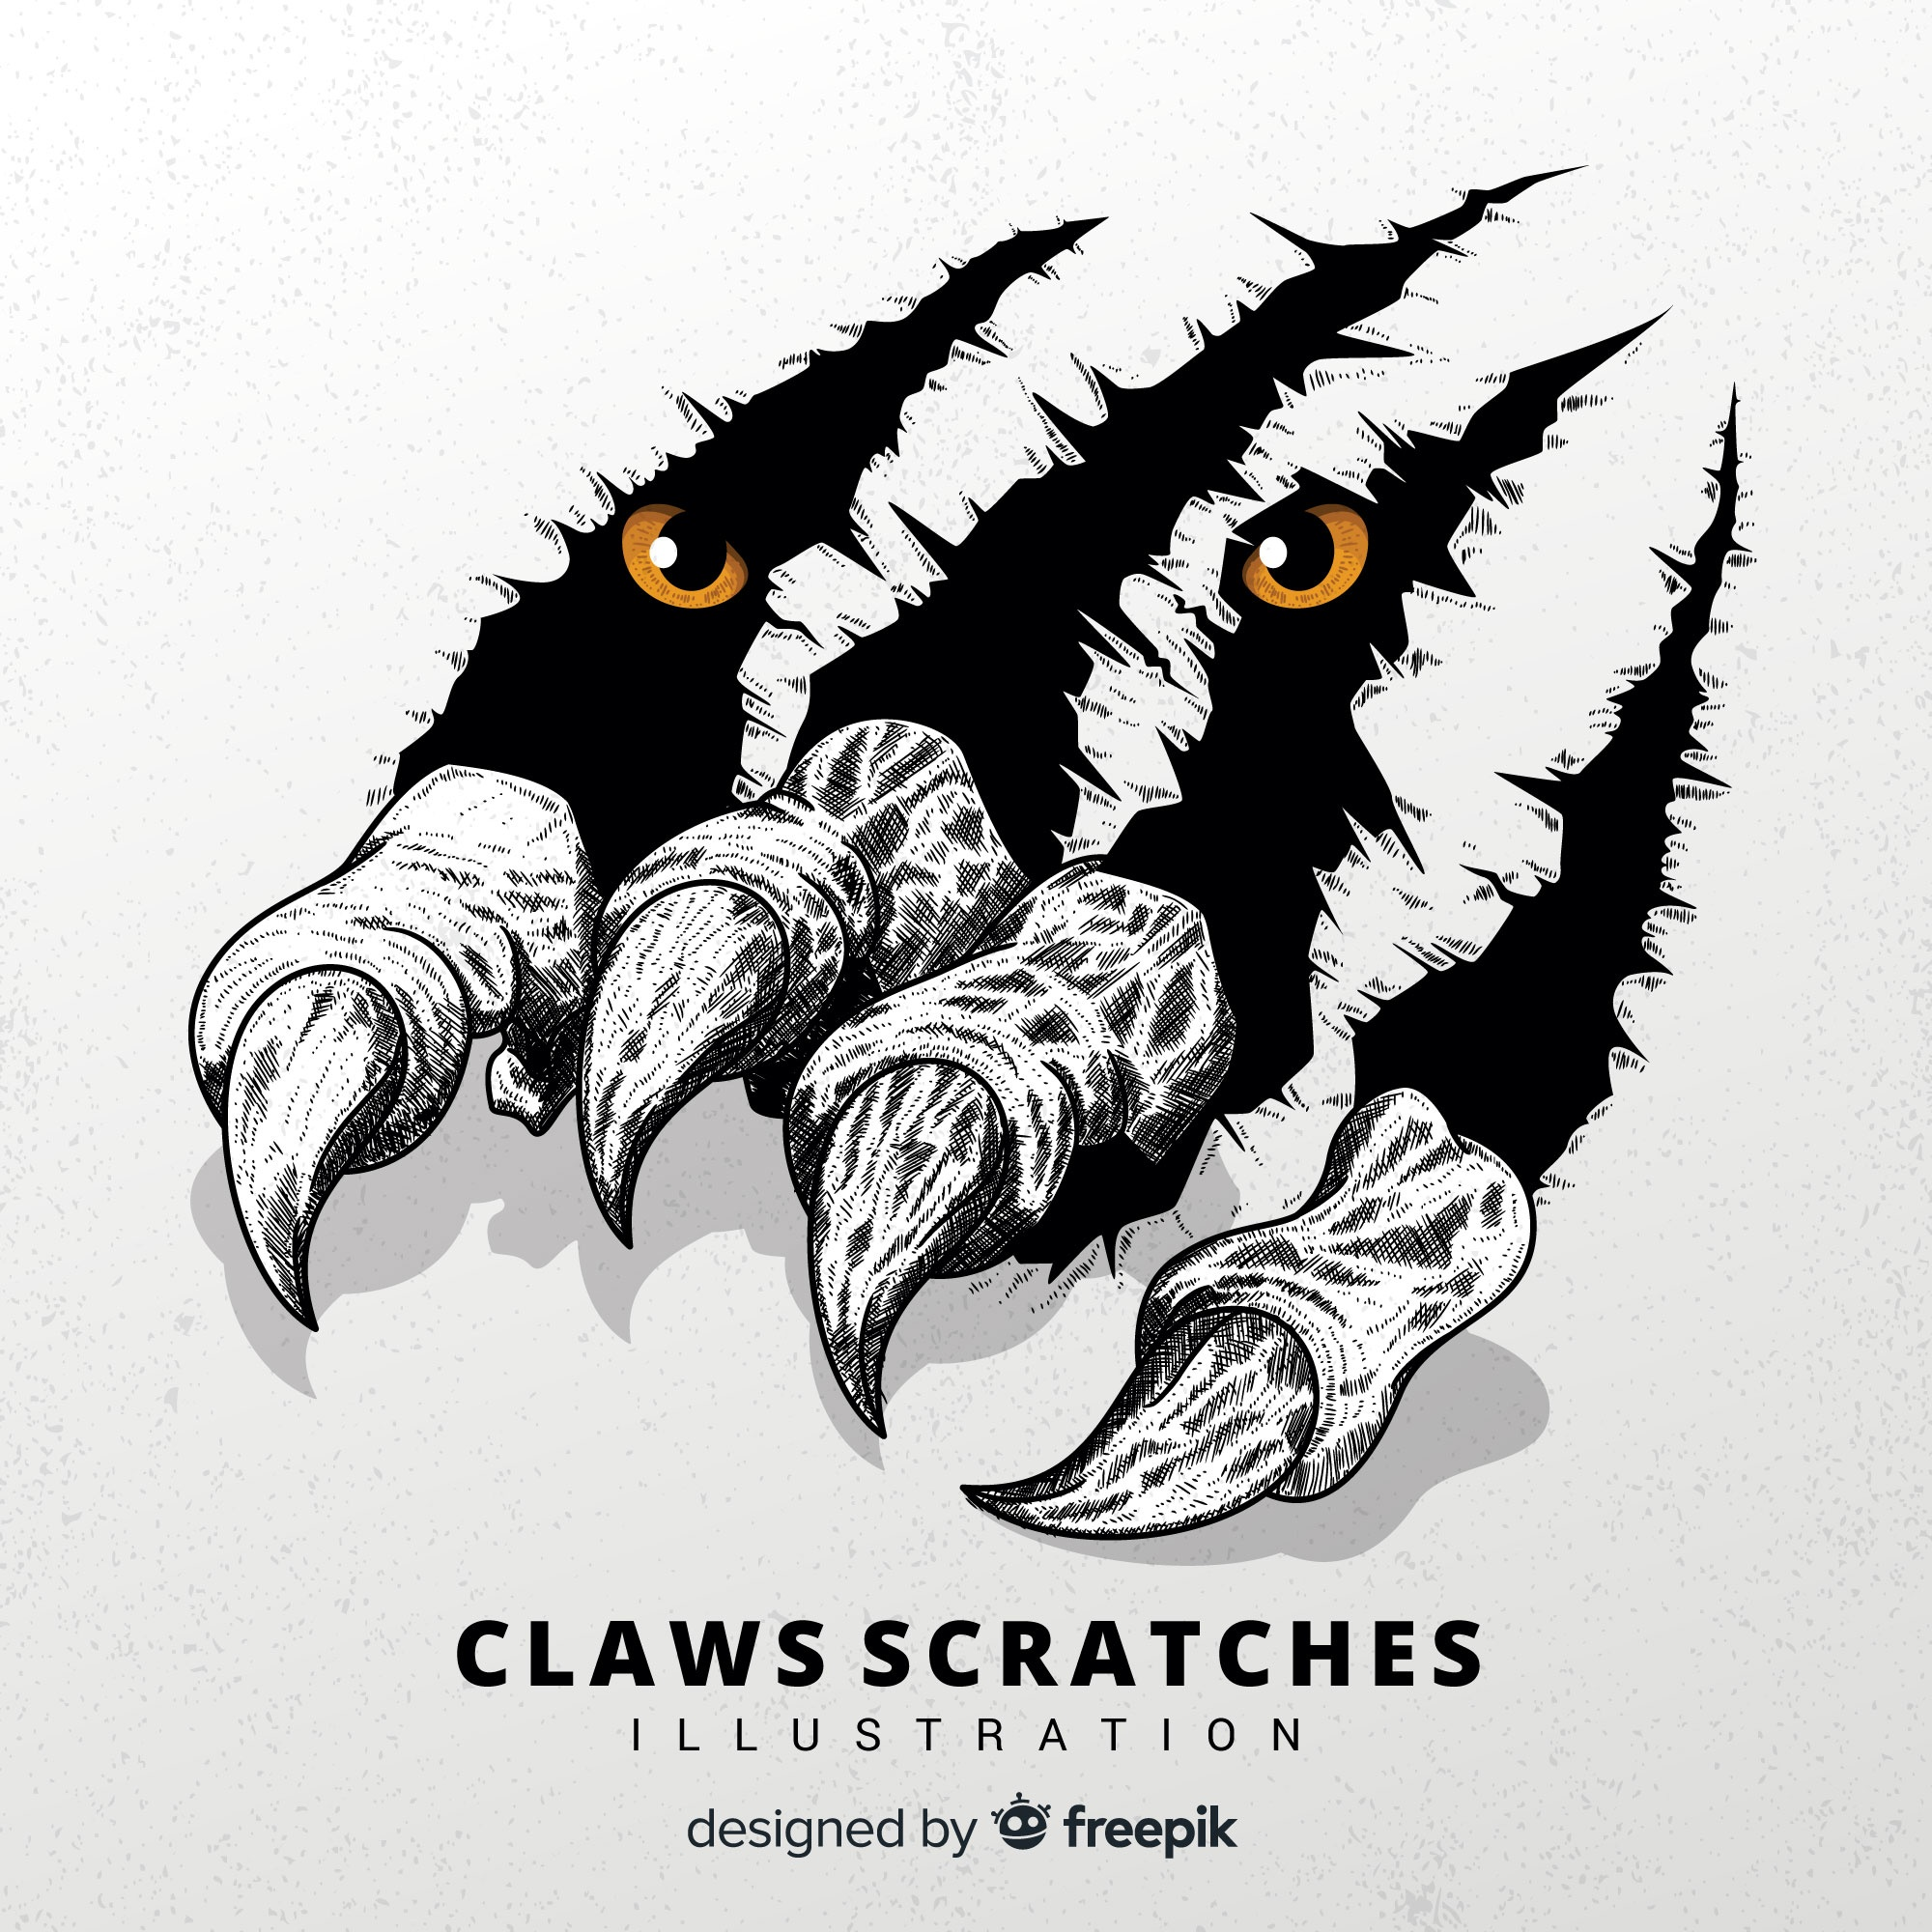 Tiger claw scratches illustration